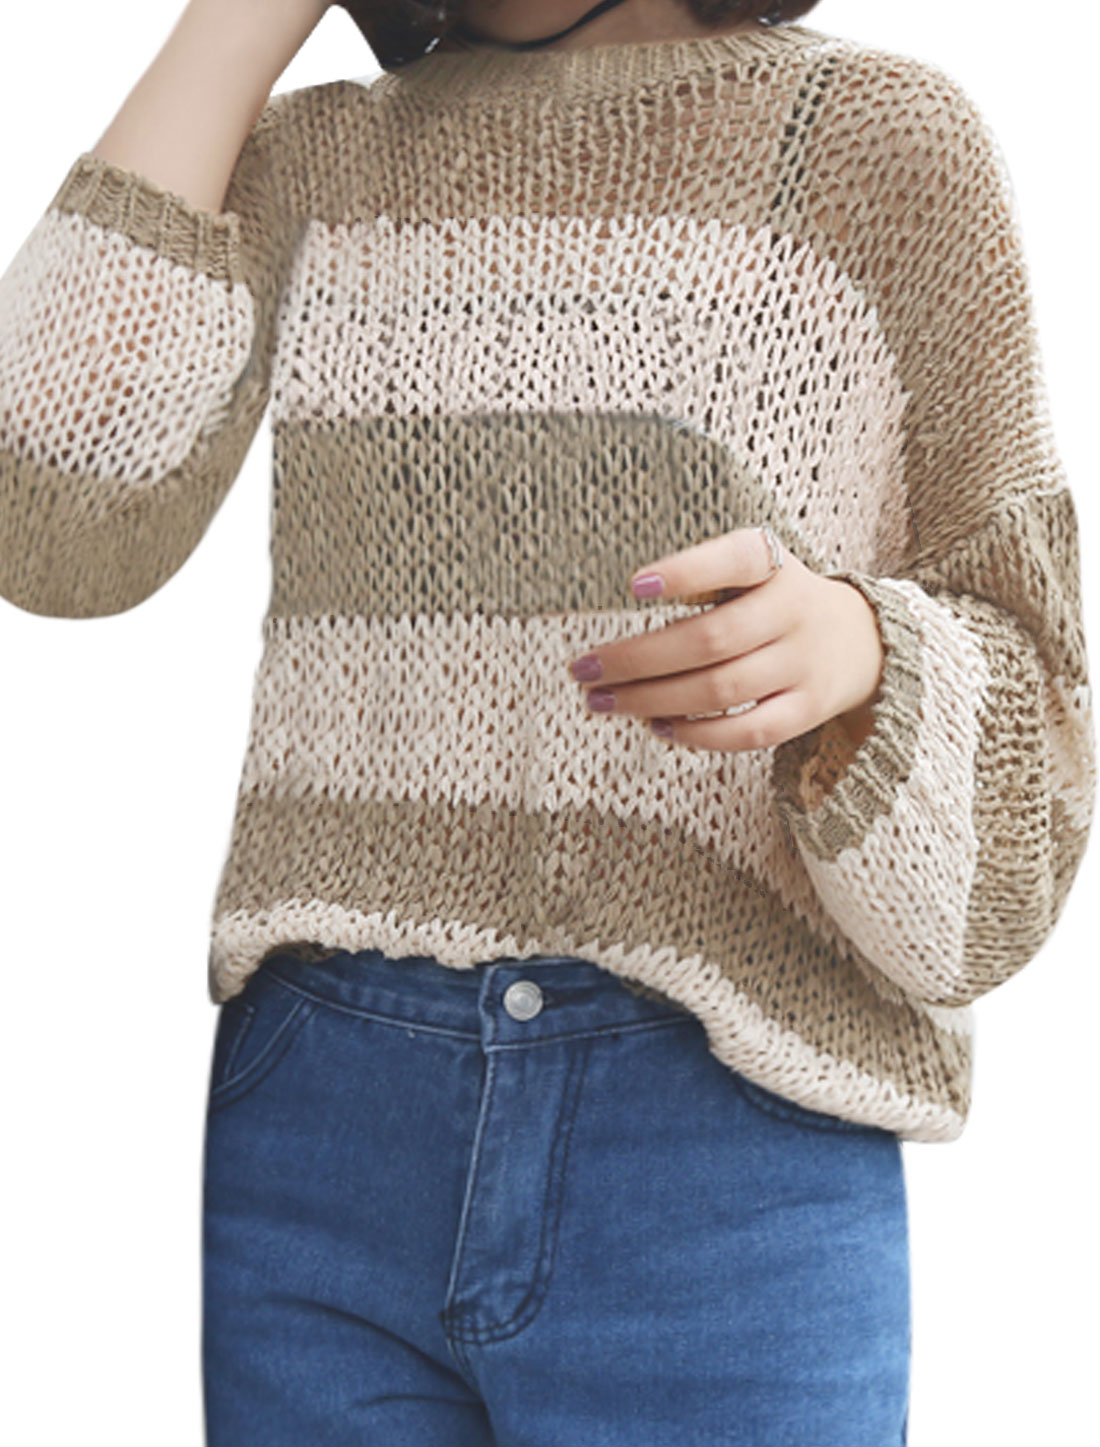 Women-Long-Sleeves-Hollow-Out-Stripes-Loose-Knit-Top